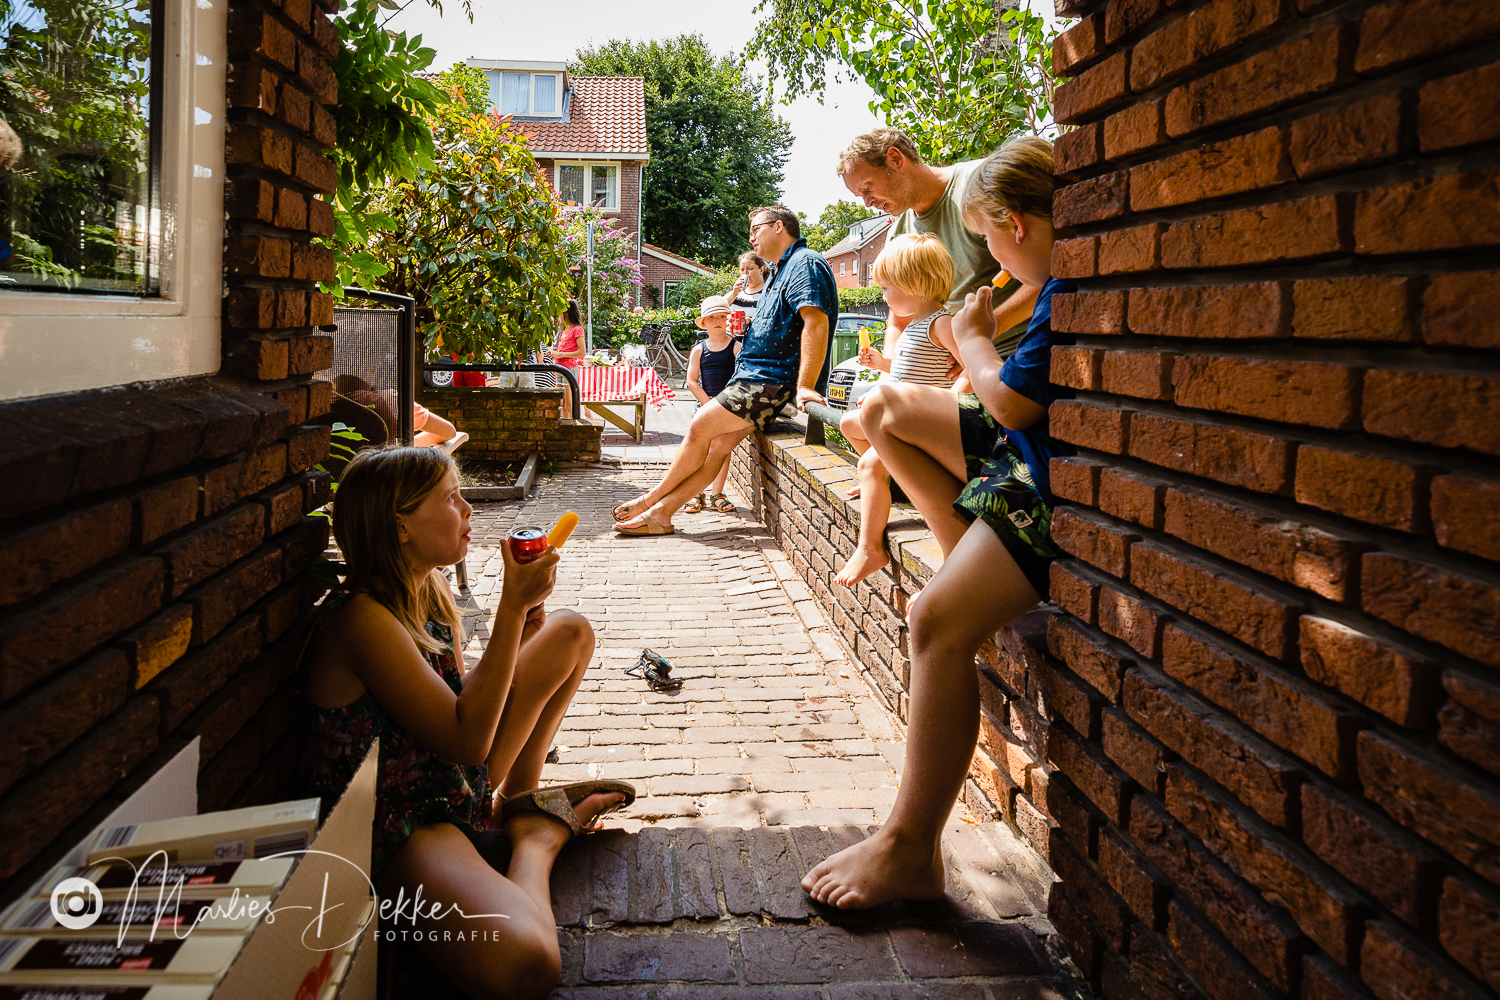 Day in the life - Gezinsfotografie